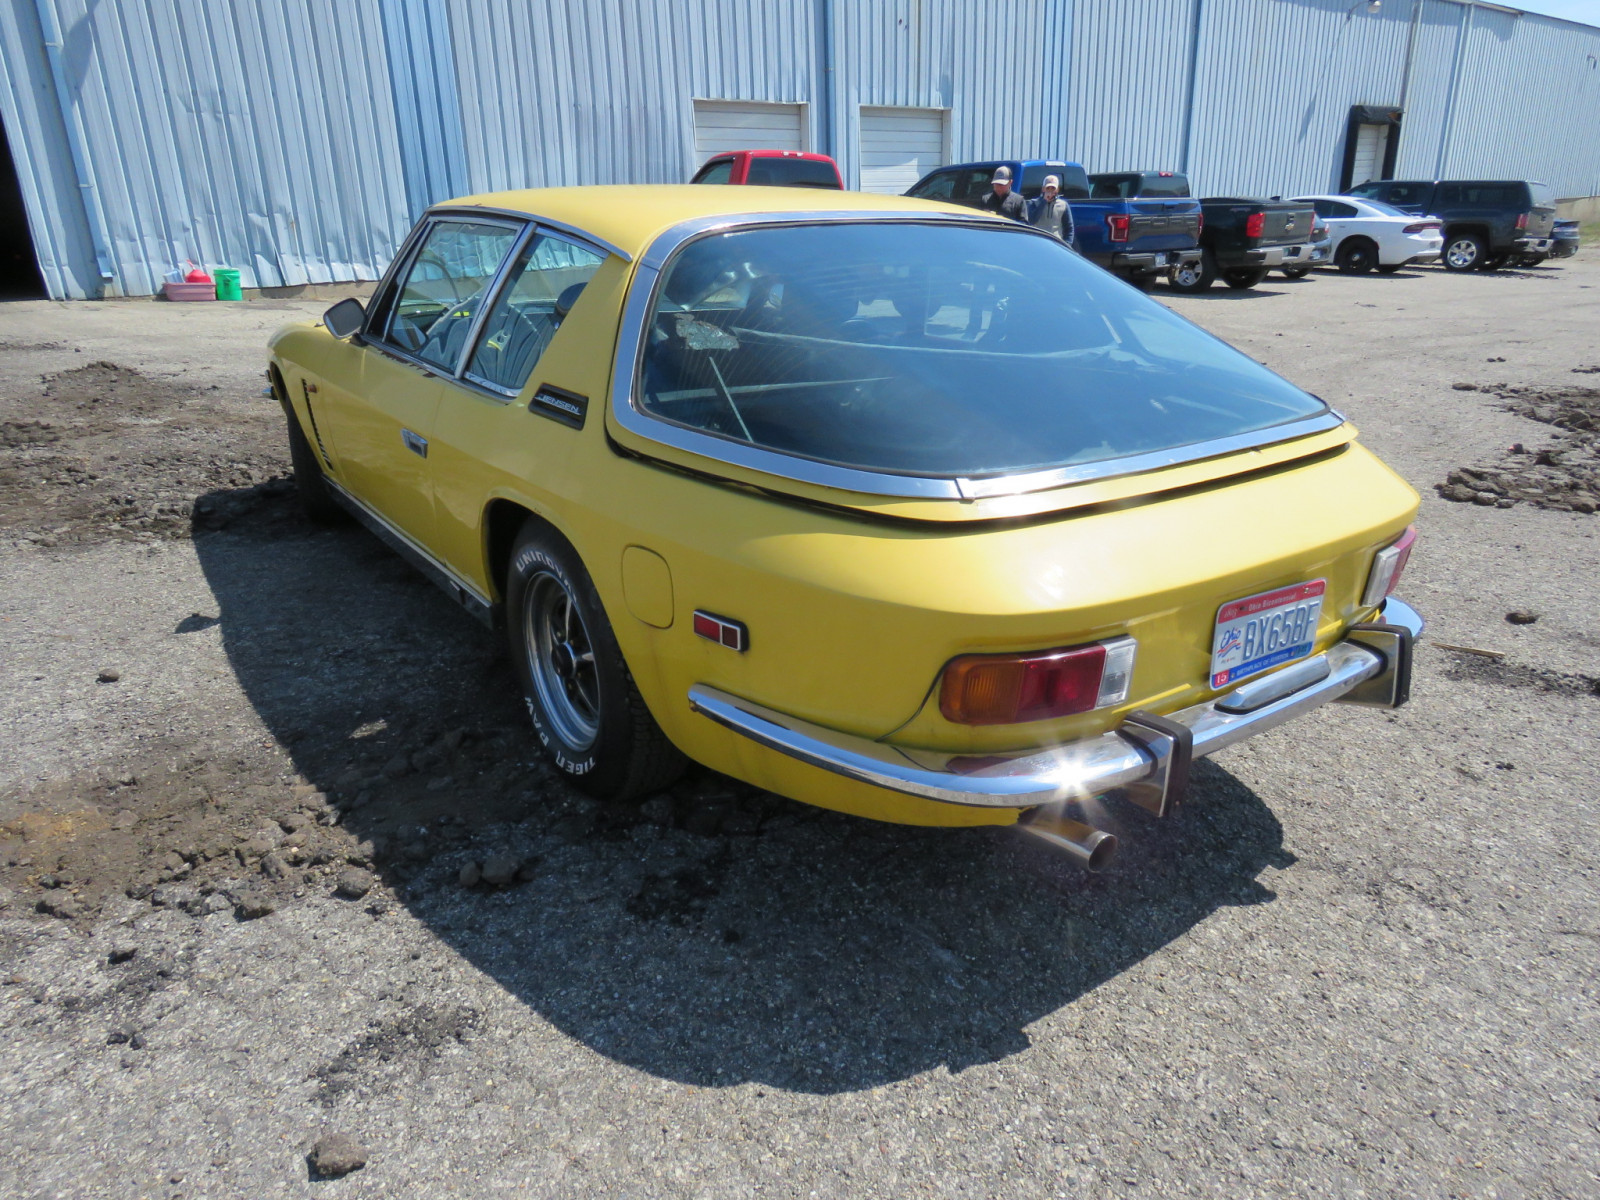 1971 Jensen Interceptor - Image 8